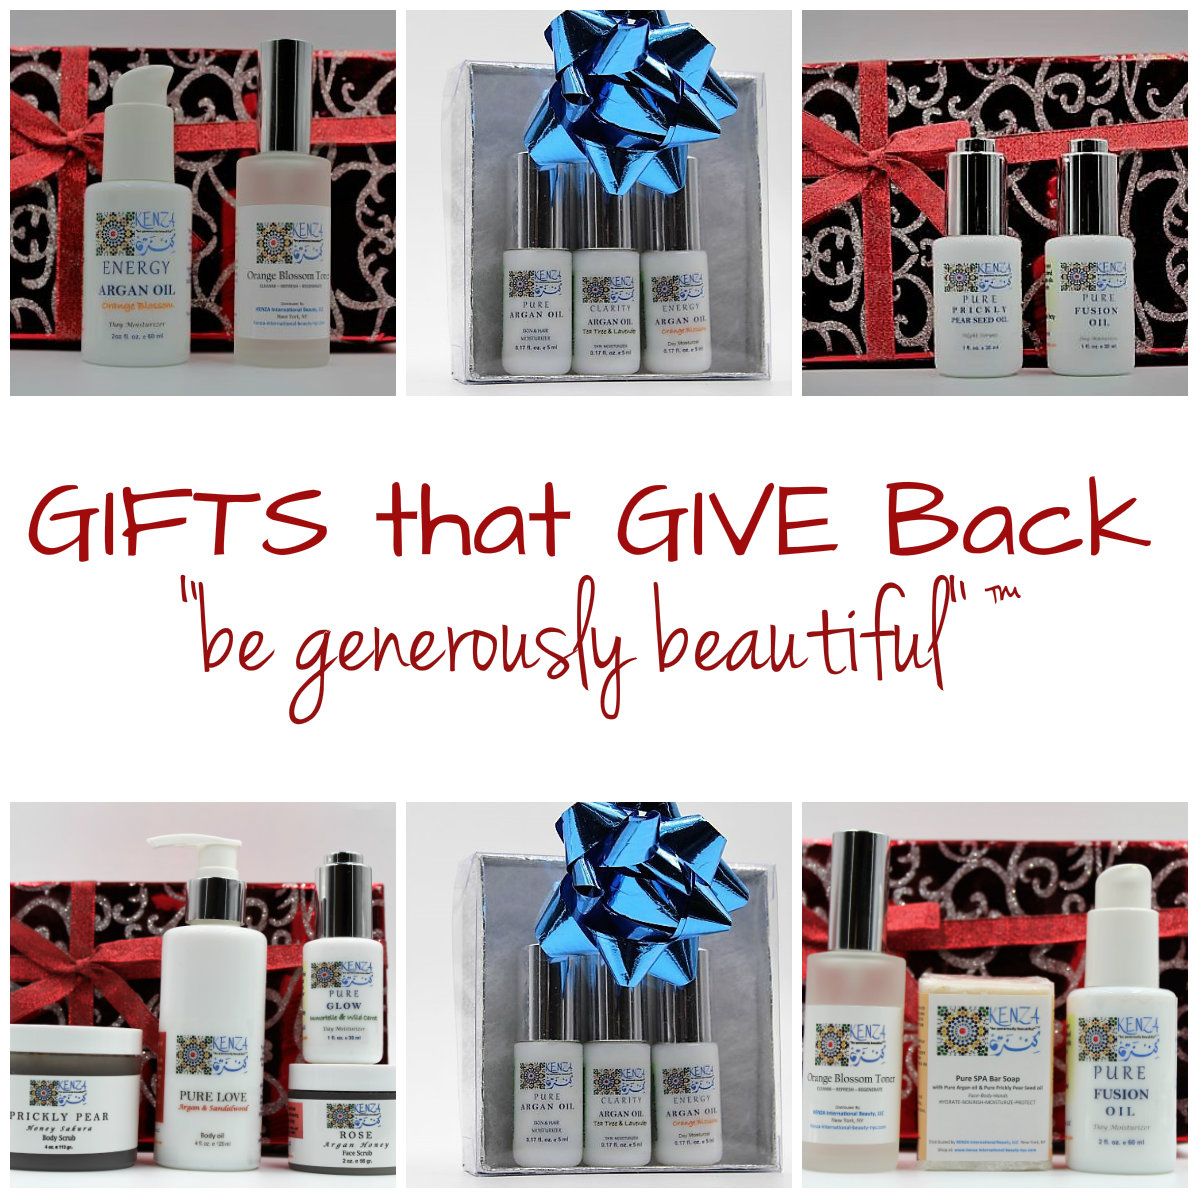 Gifts that Give Back for Any Occasions